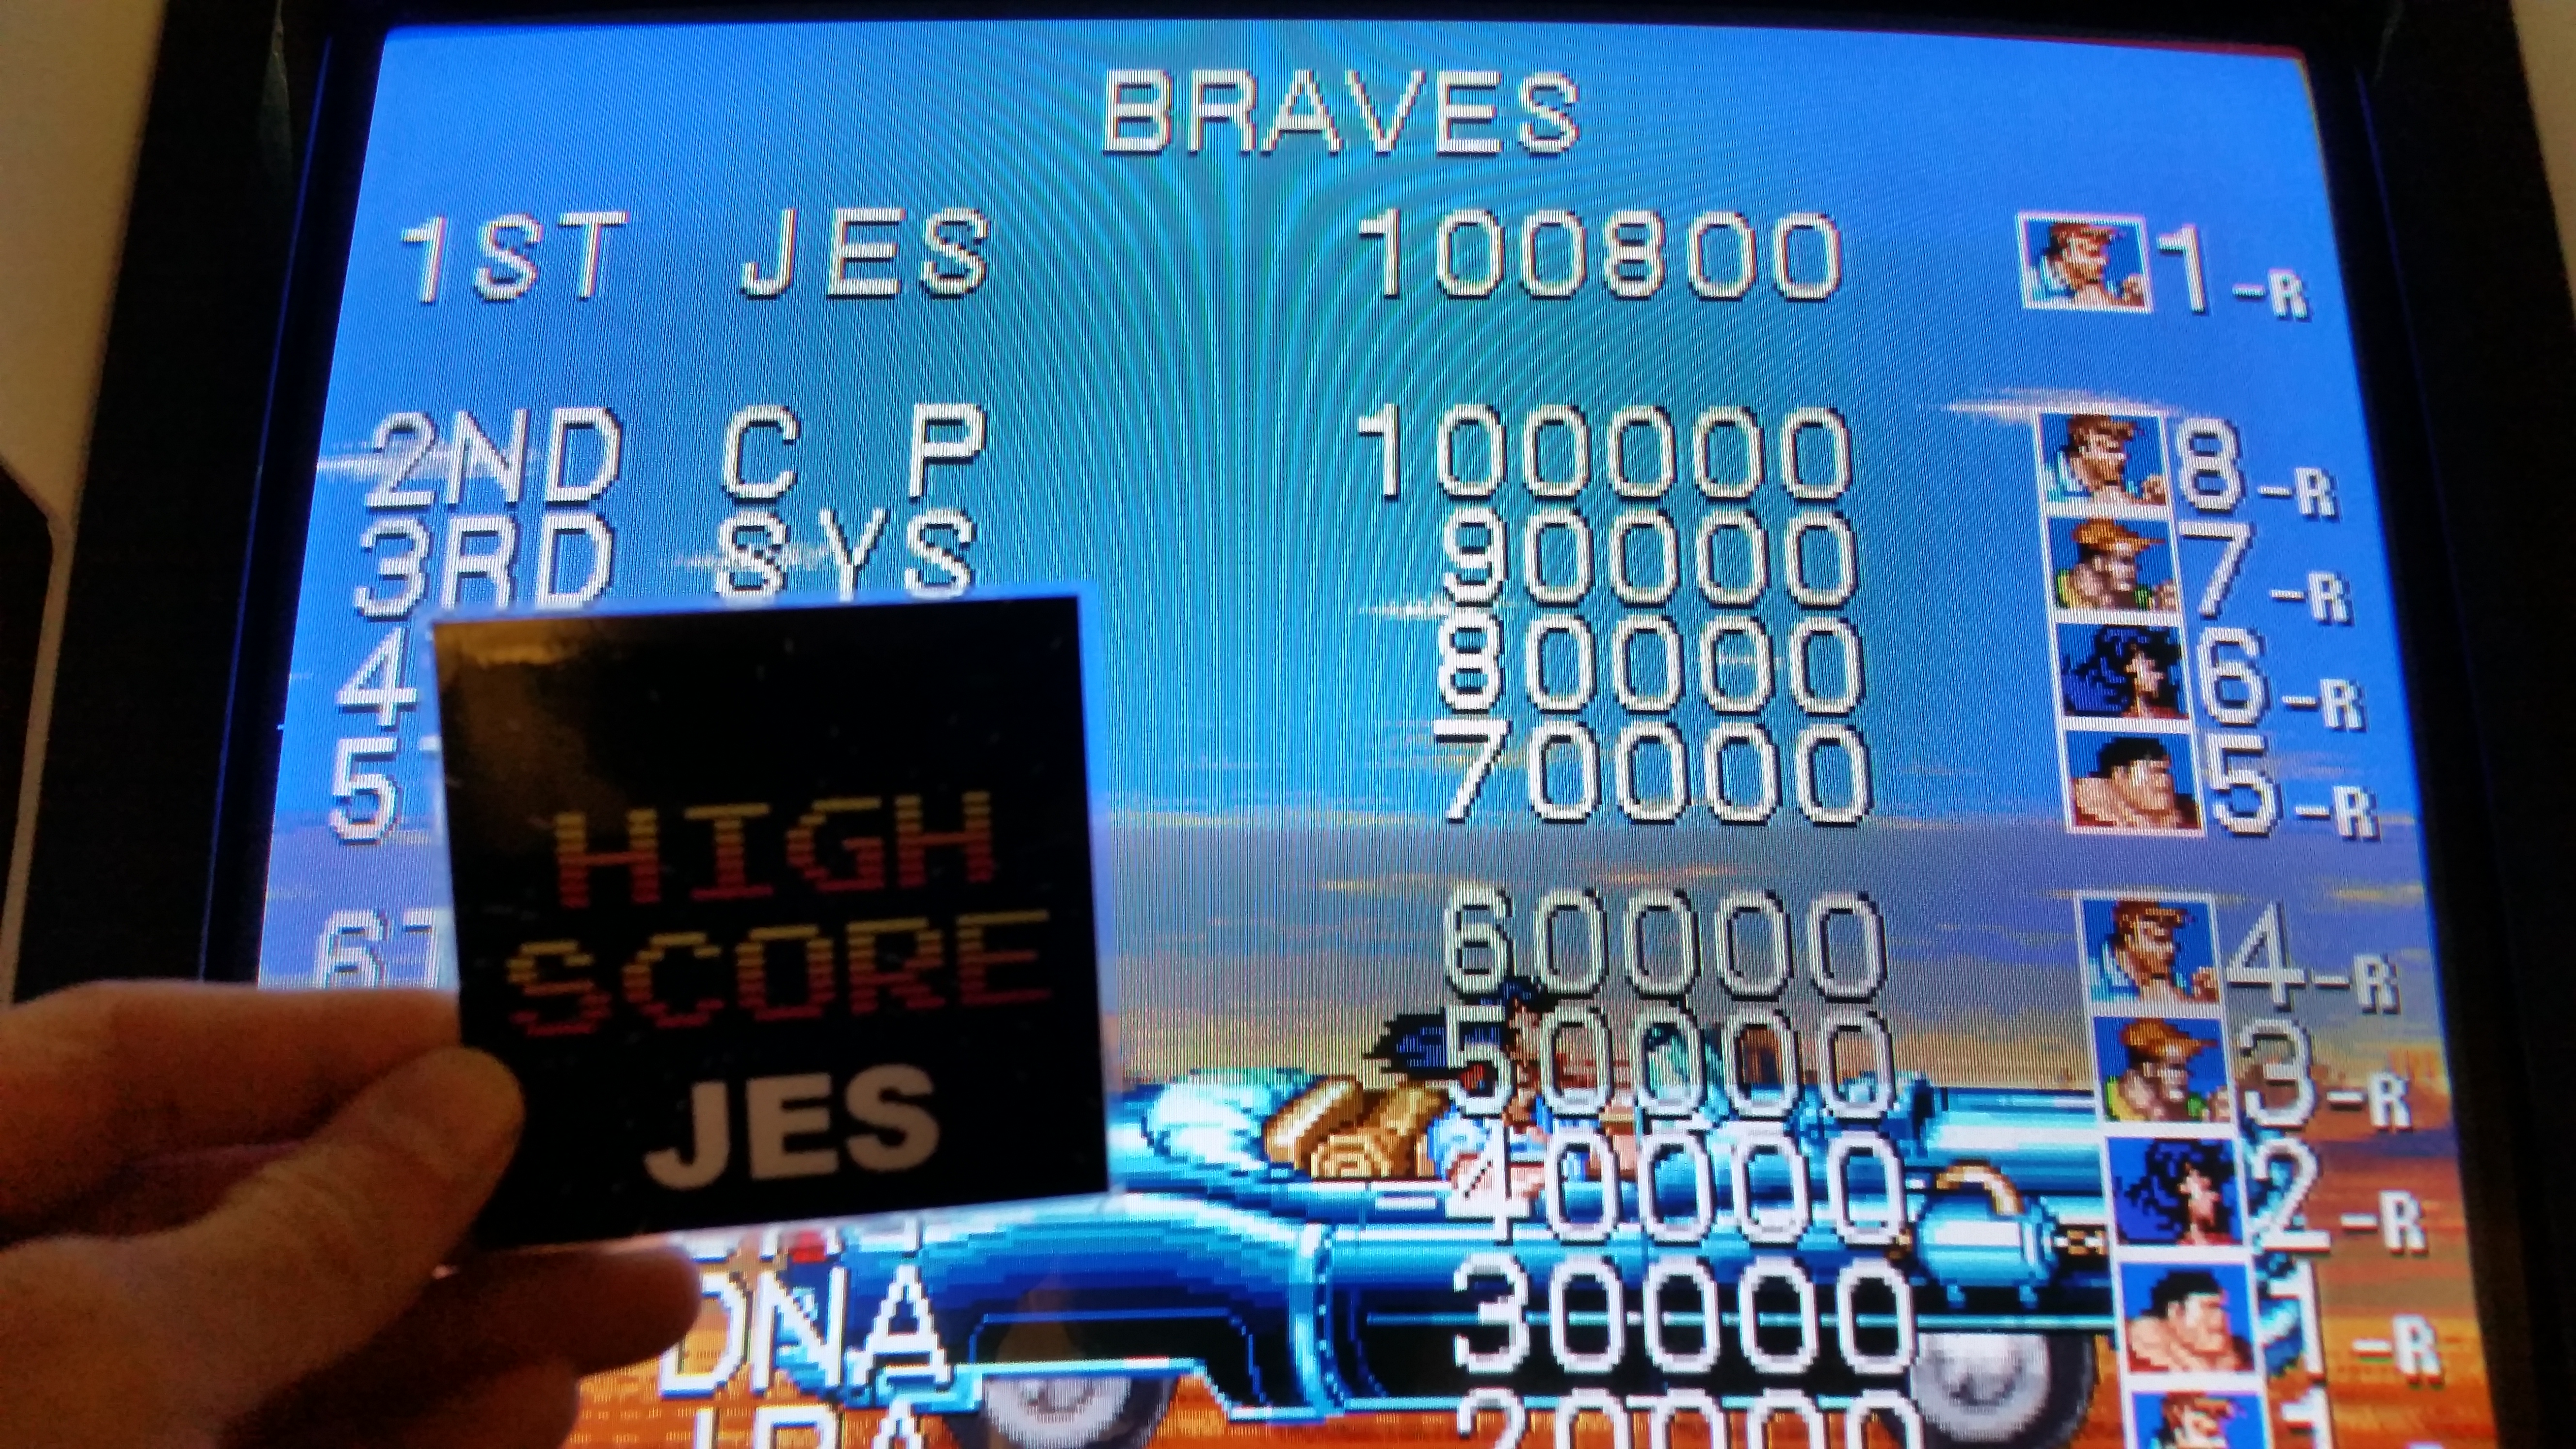 JES: Cadillacs and Dinosaurs [dino] (Arcade Emulated / M.A.M.E.) 100,800 points on 2016-12-13 23:26:07